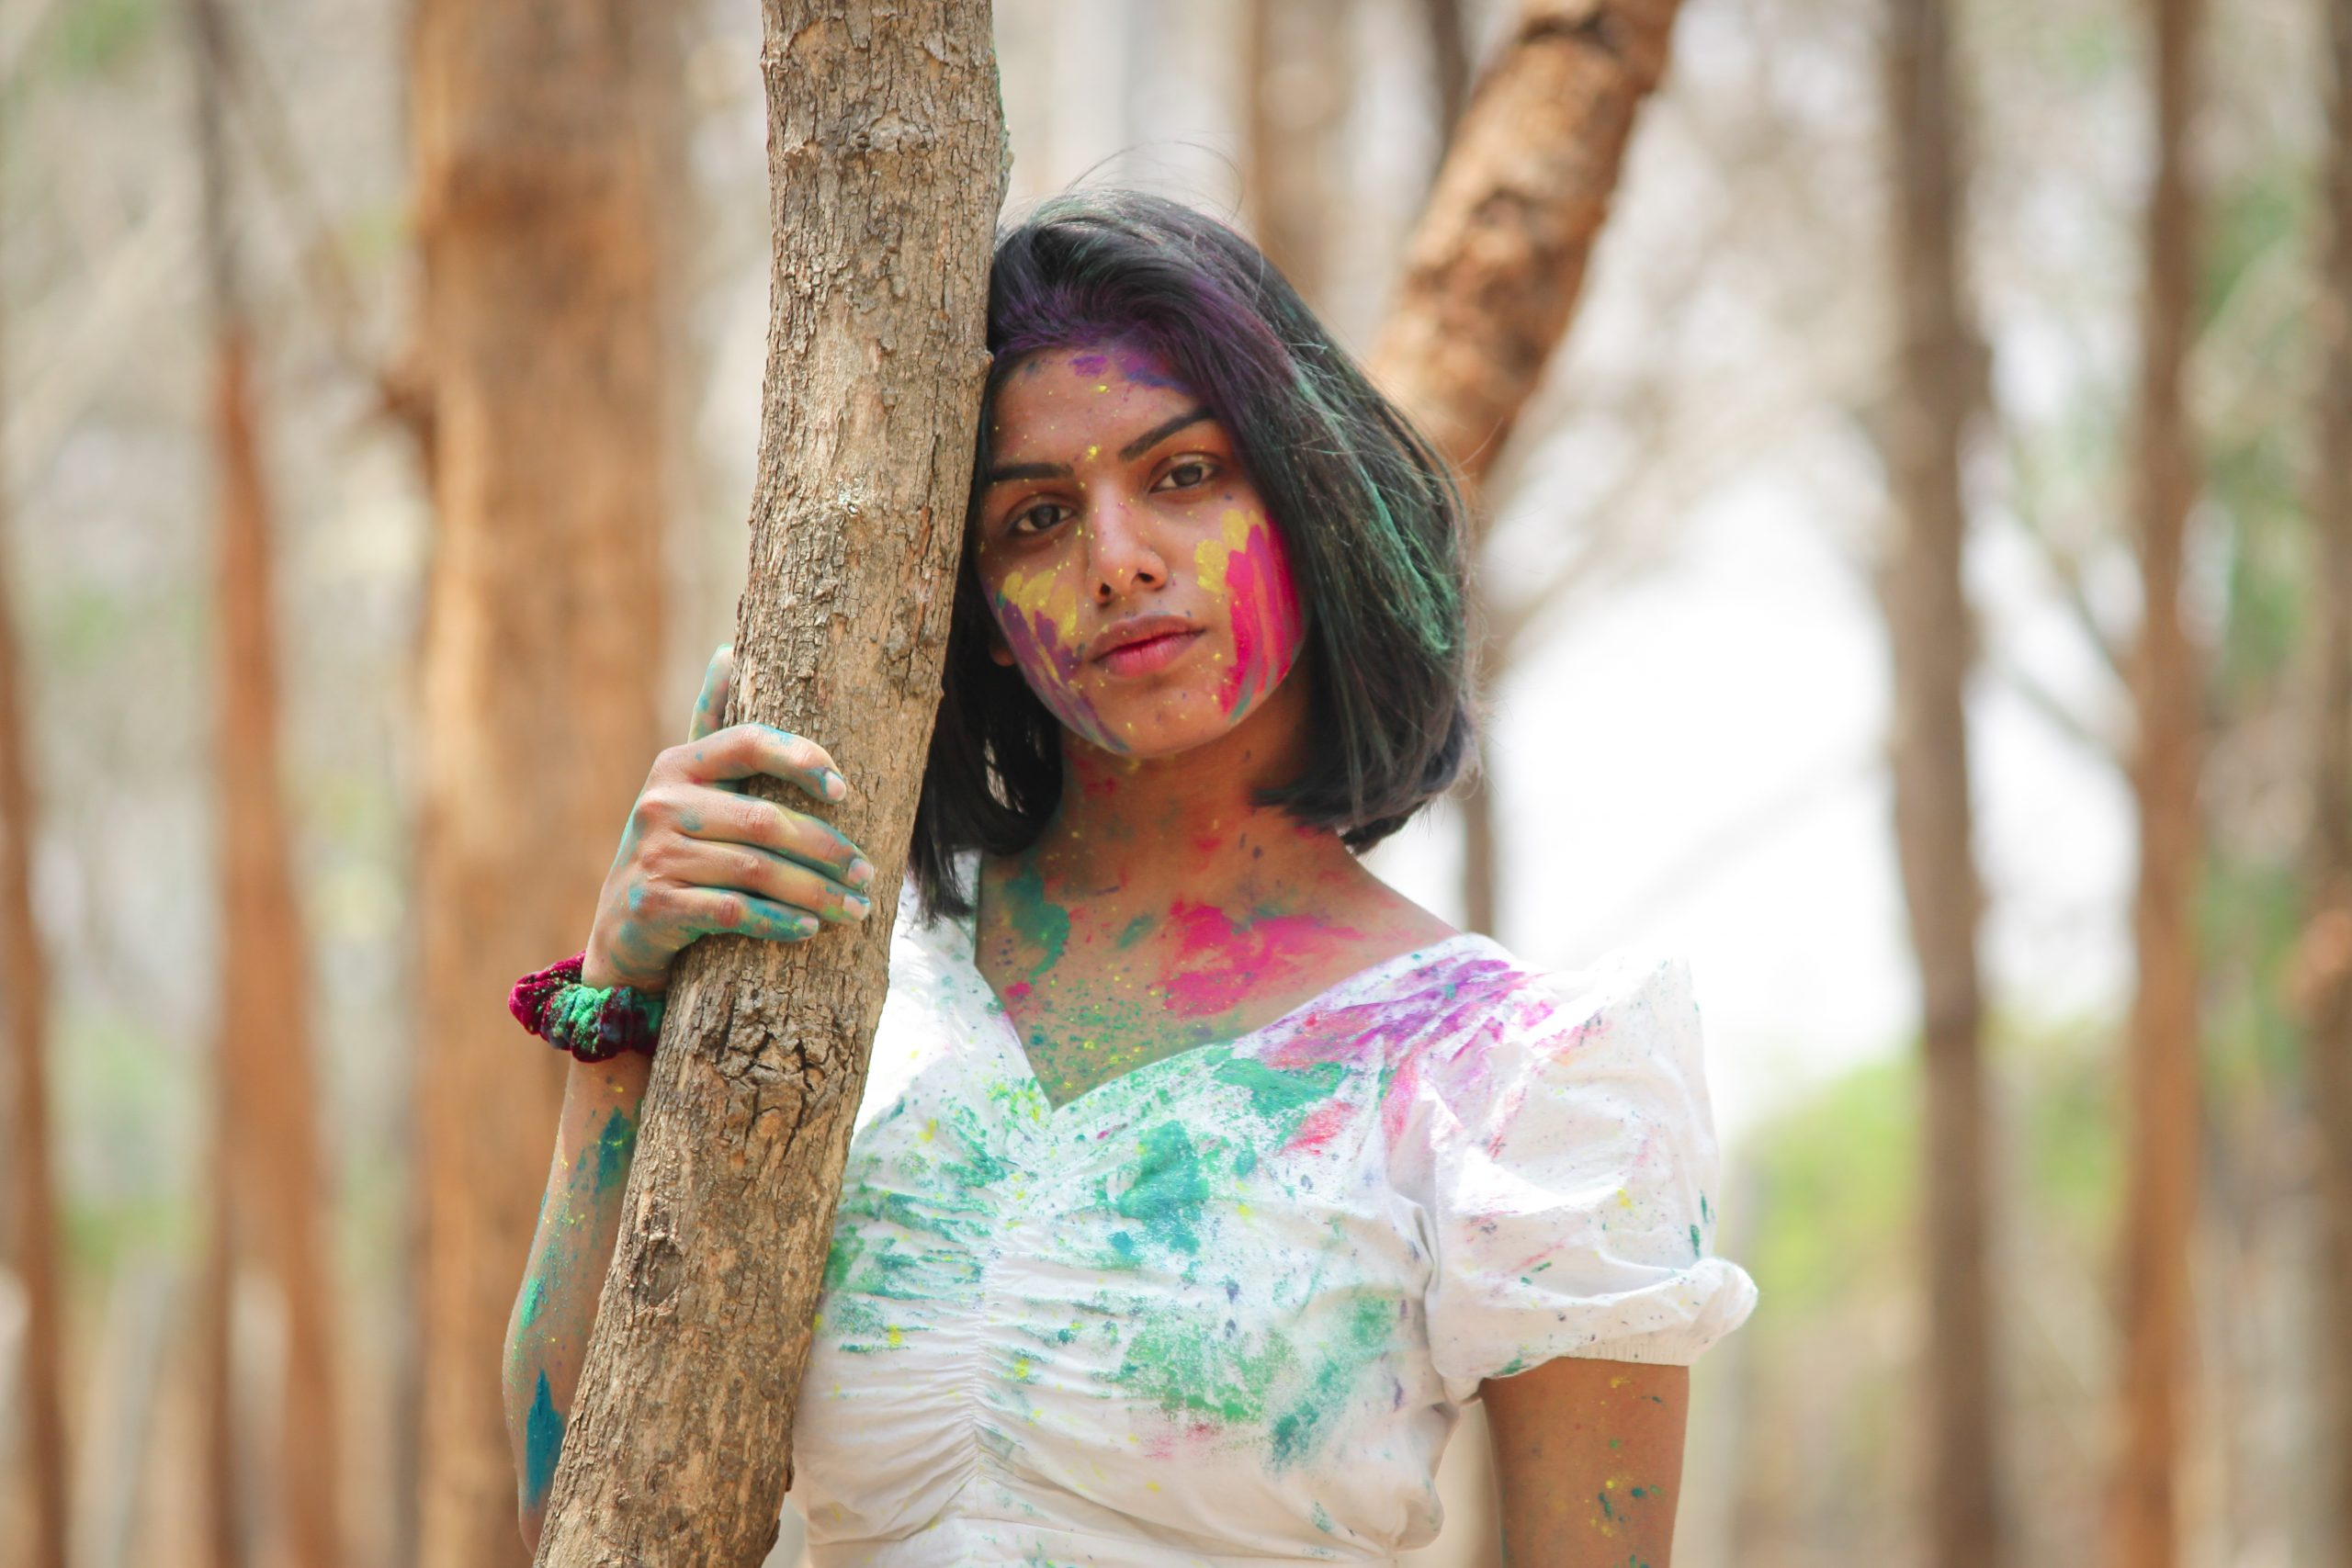 Girl posing with Holi colors on her face